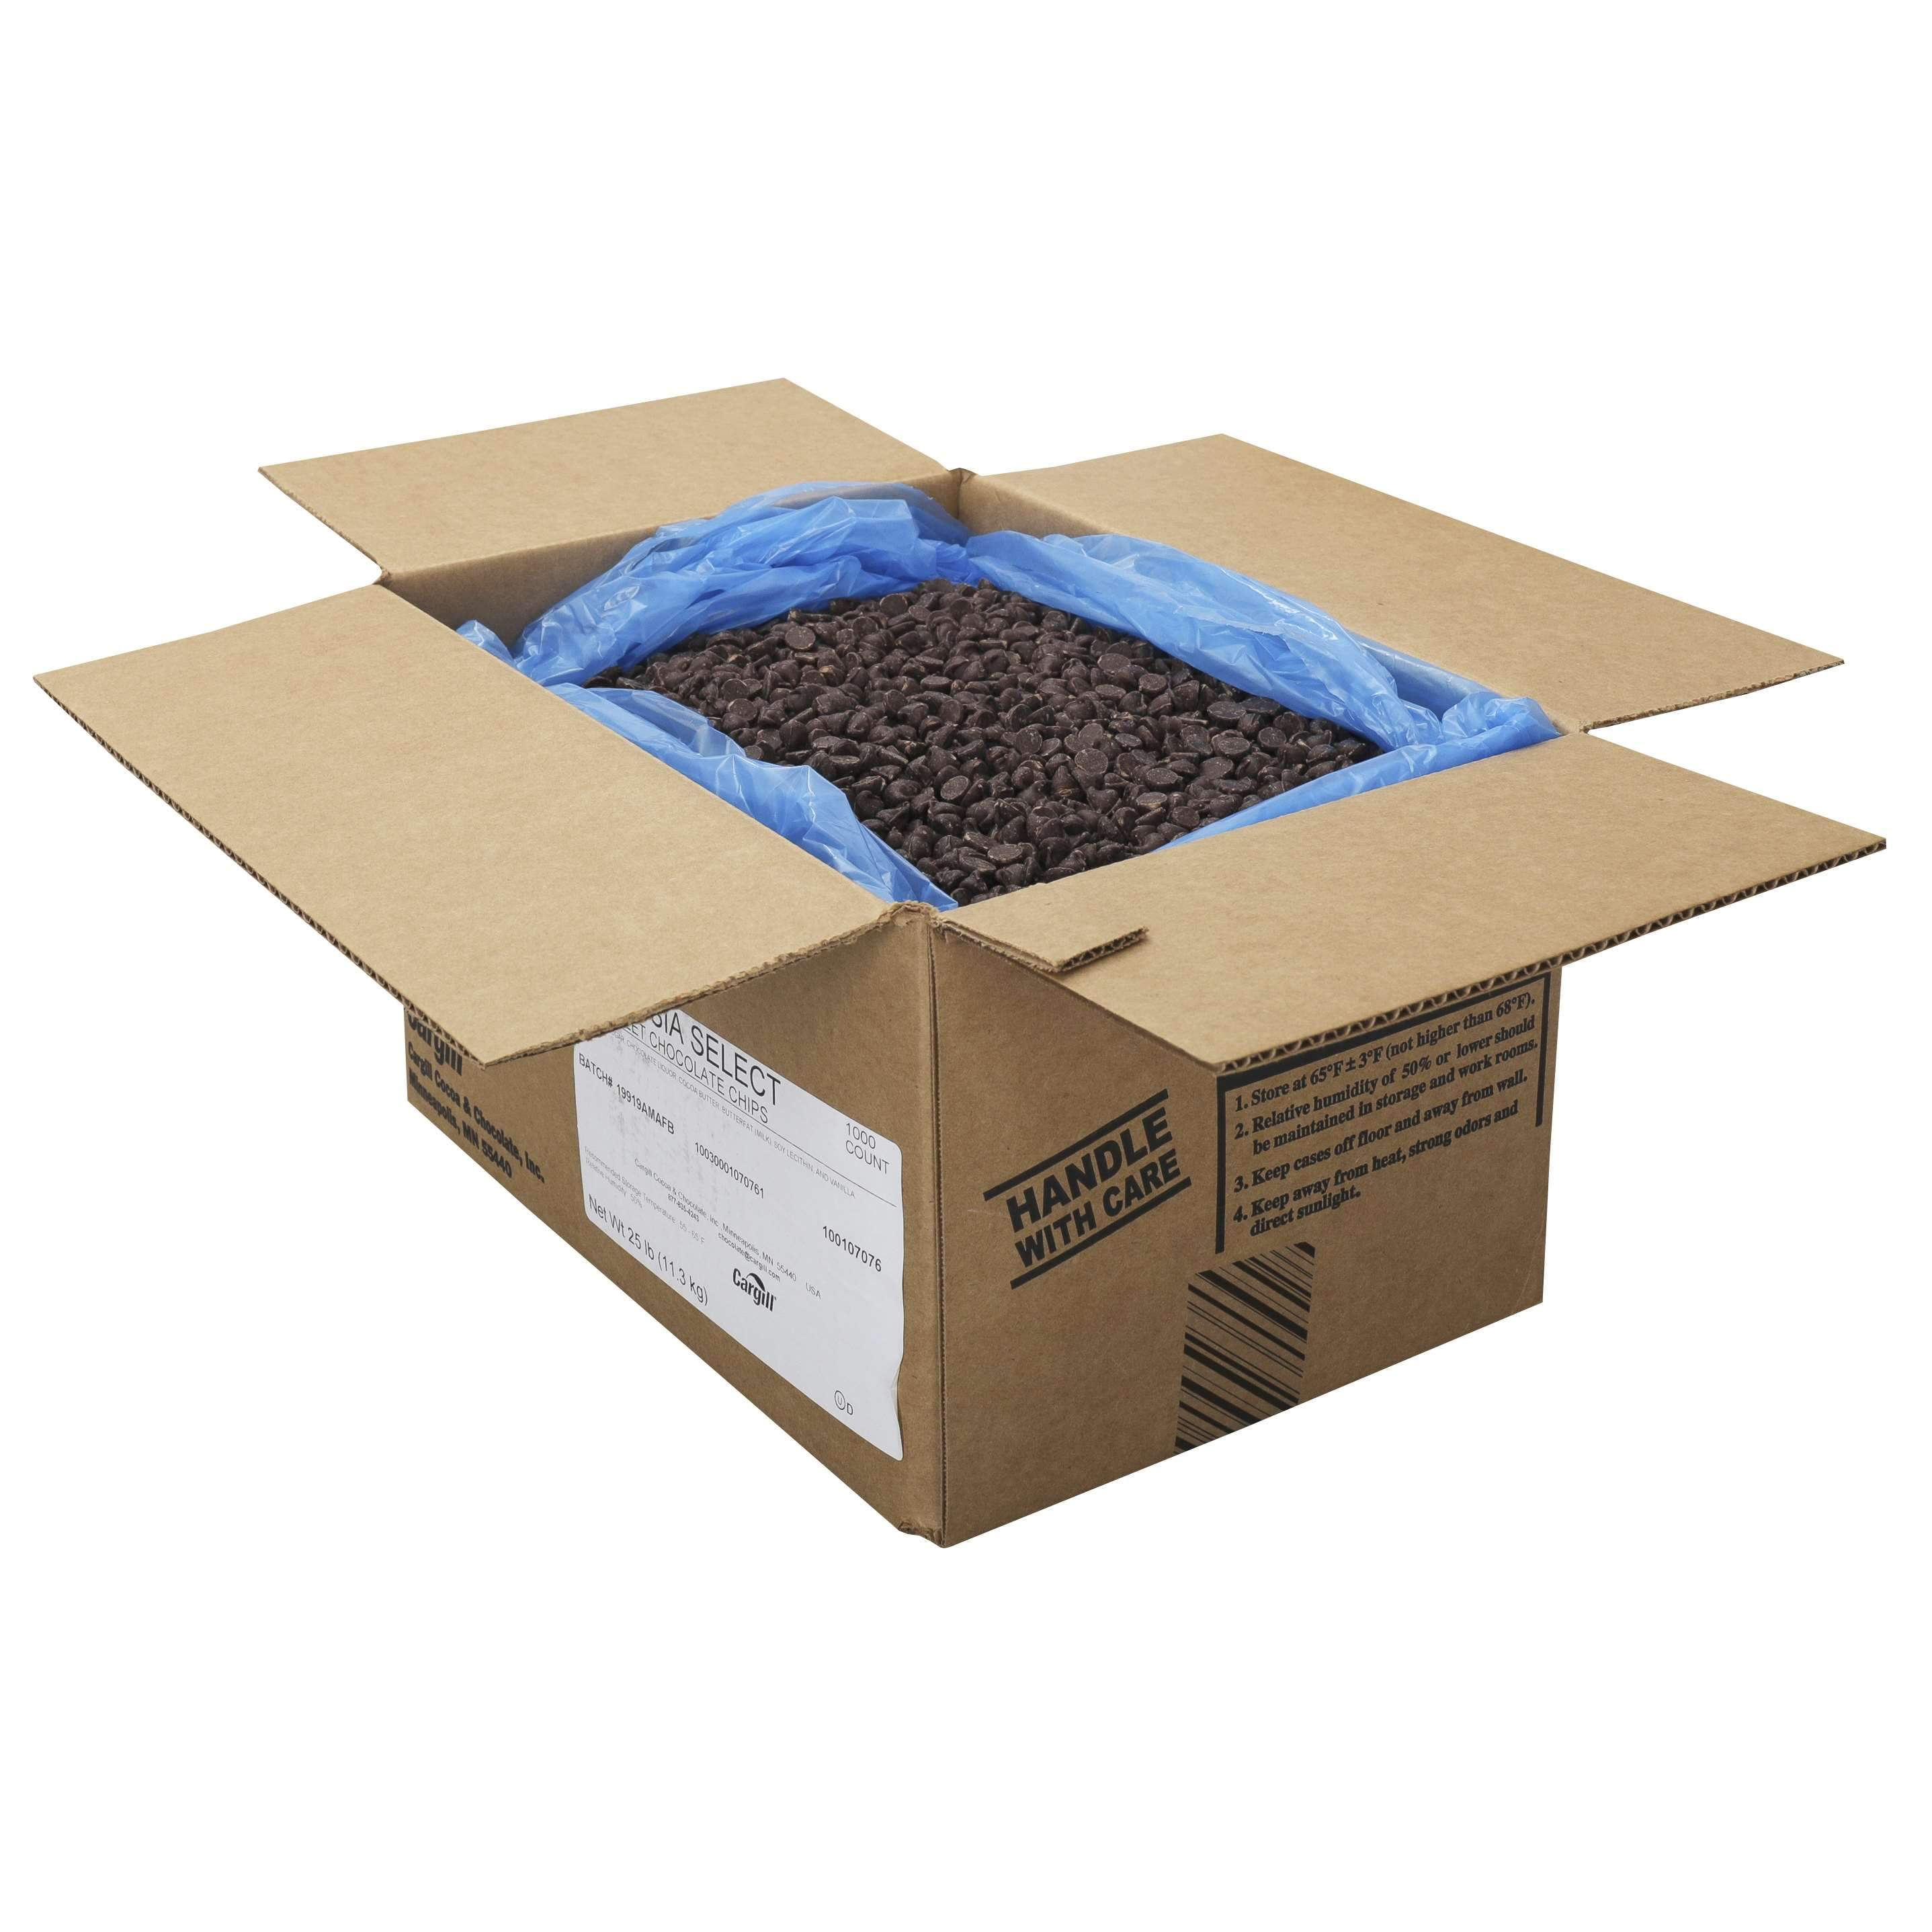 Ambrosia Semi-Sweet Chocolate Chips, 10 Pound Meltable Cargill Cocoa And Chocolate 25 Pound